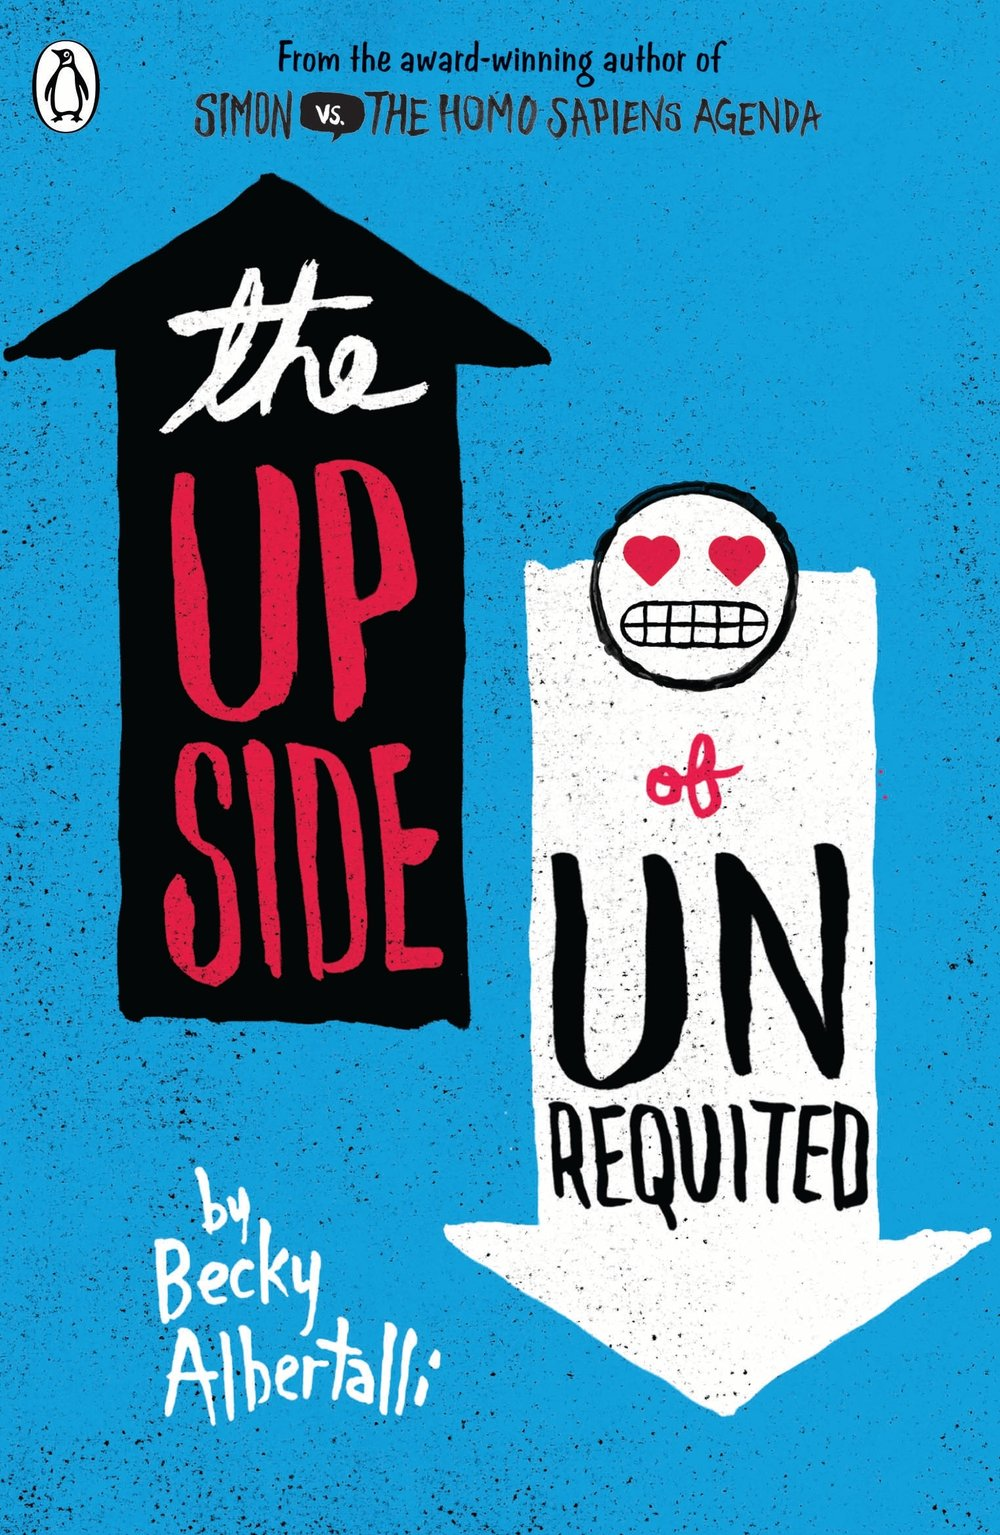 becky-albertalli-upside-unrequited.jpg